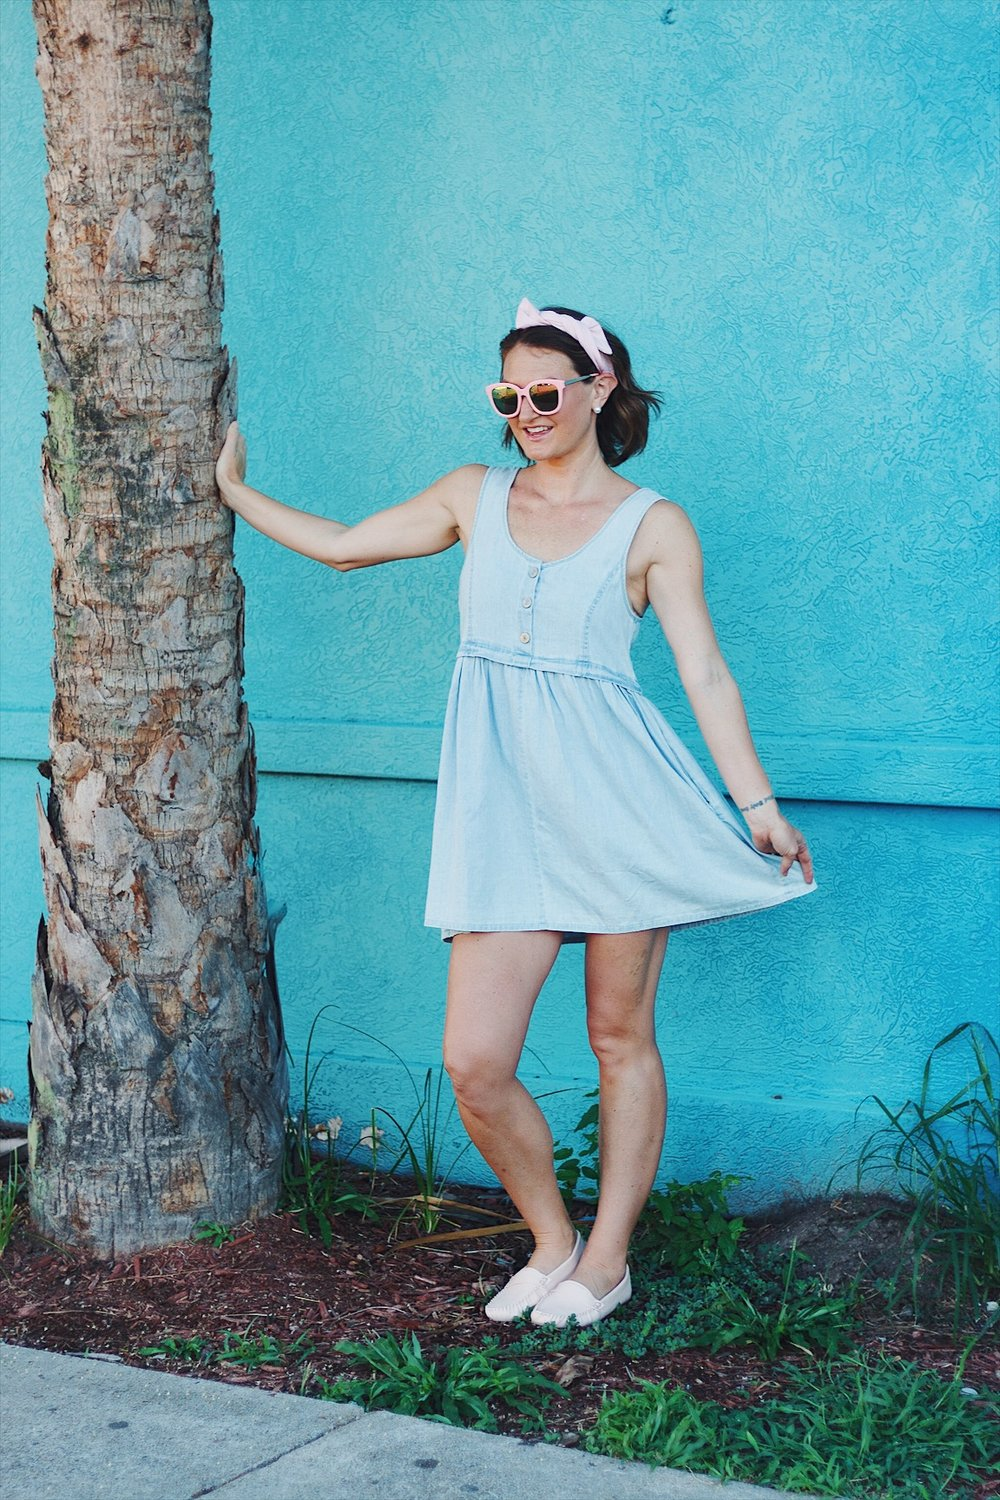 denim dress, pink sunglasses, pink hair wrap, pink moccasins